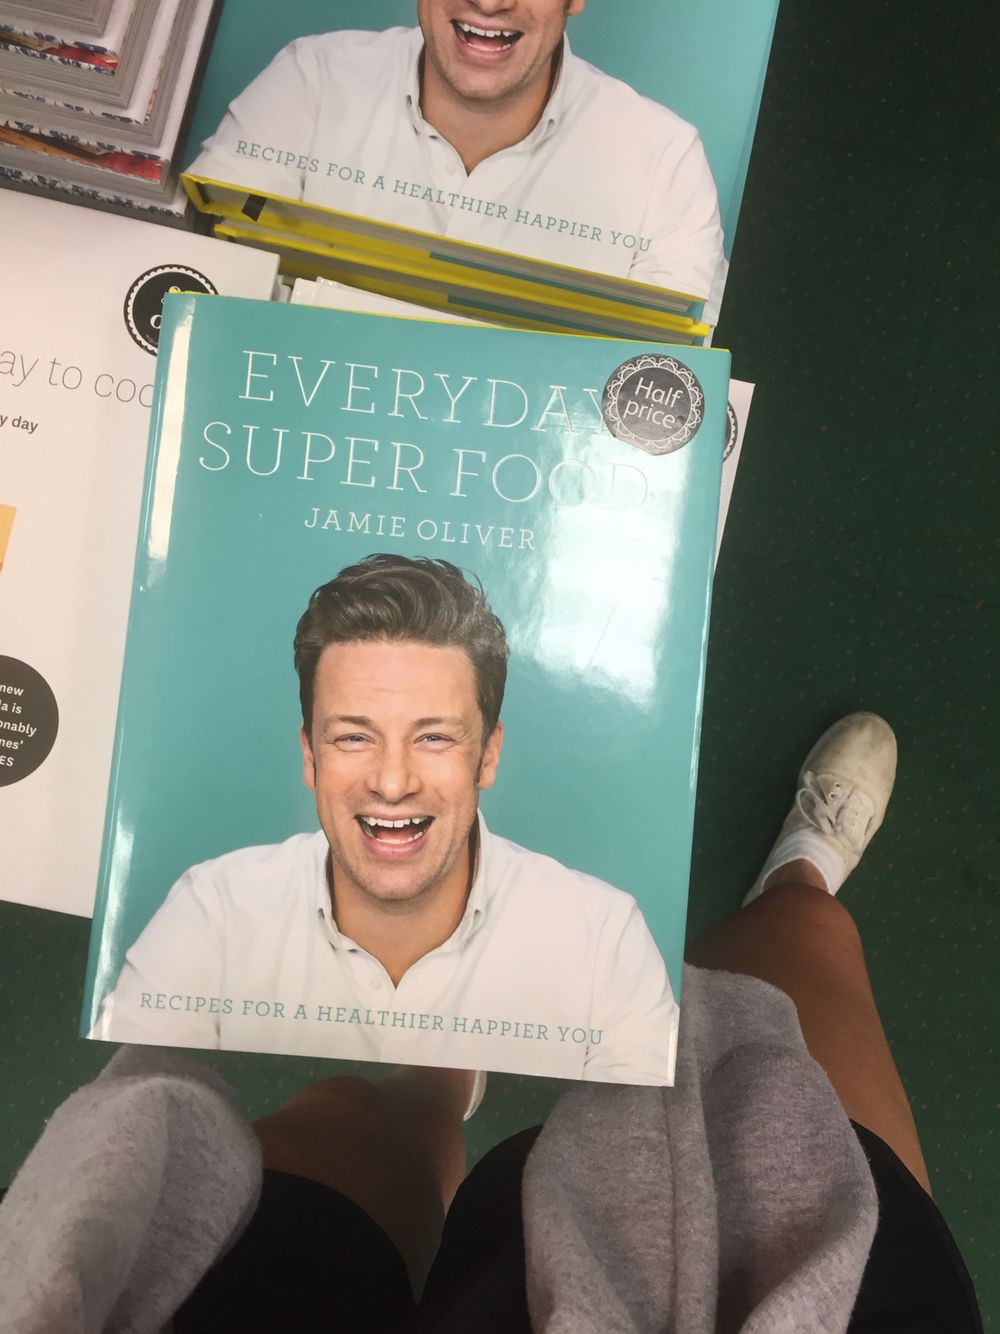 Jamie oliver superfood recipe book quick healthy midweek meals jamie oliver superfood recipe book forumfinder Choice Image